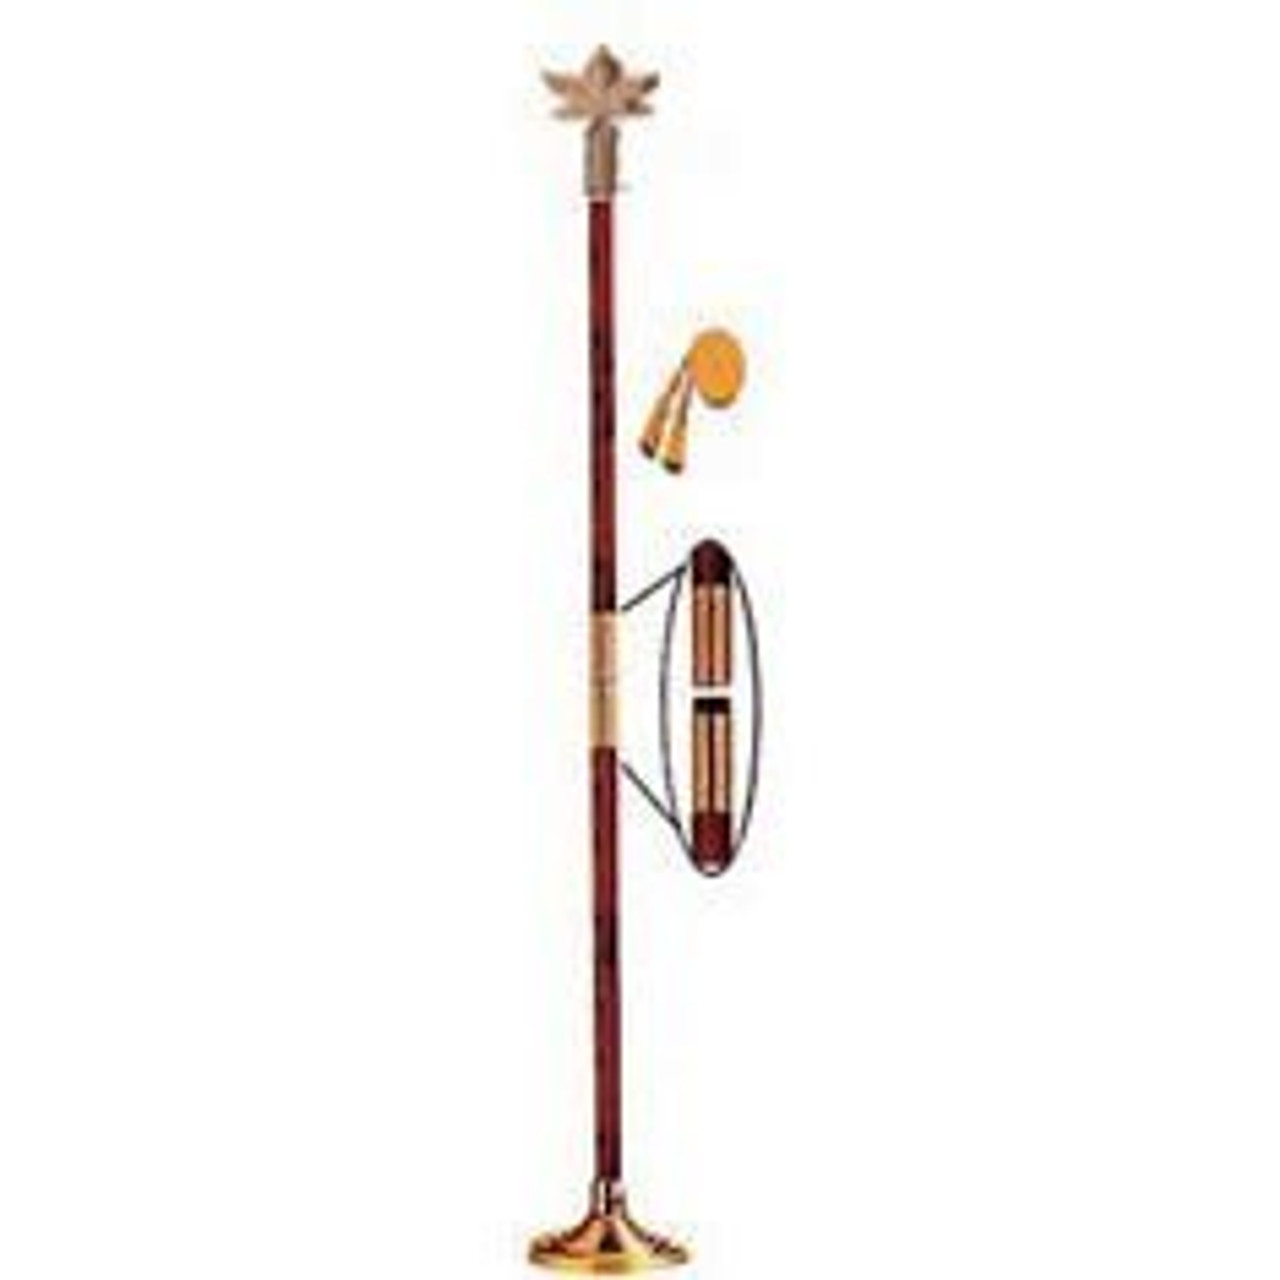 Indoor Display Pole w/ Maple Leaf